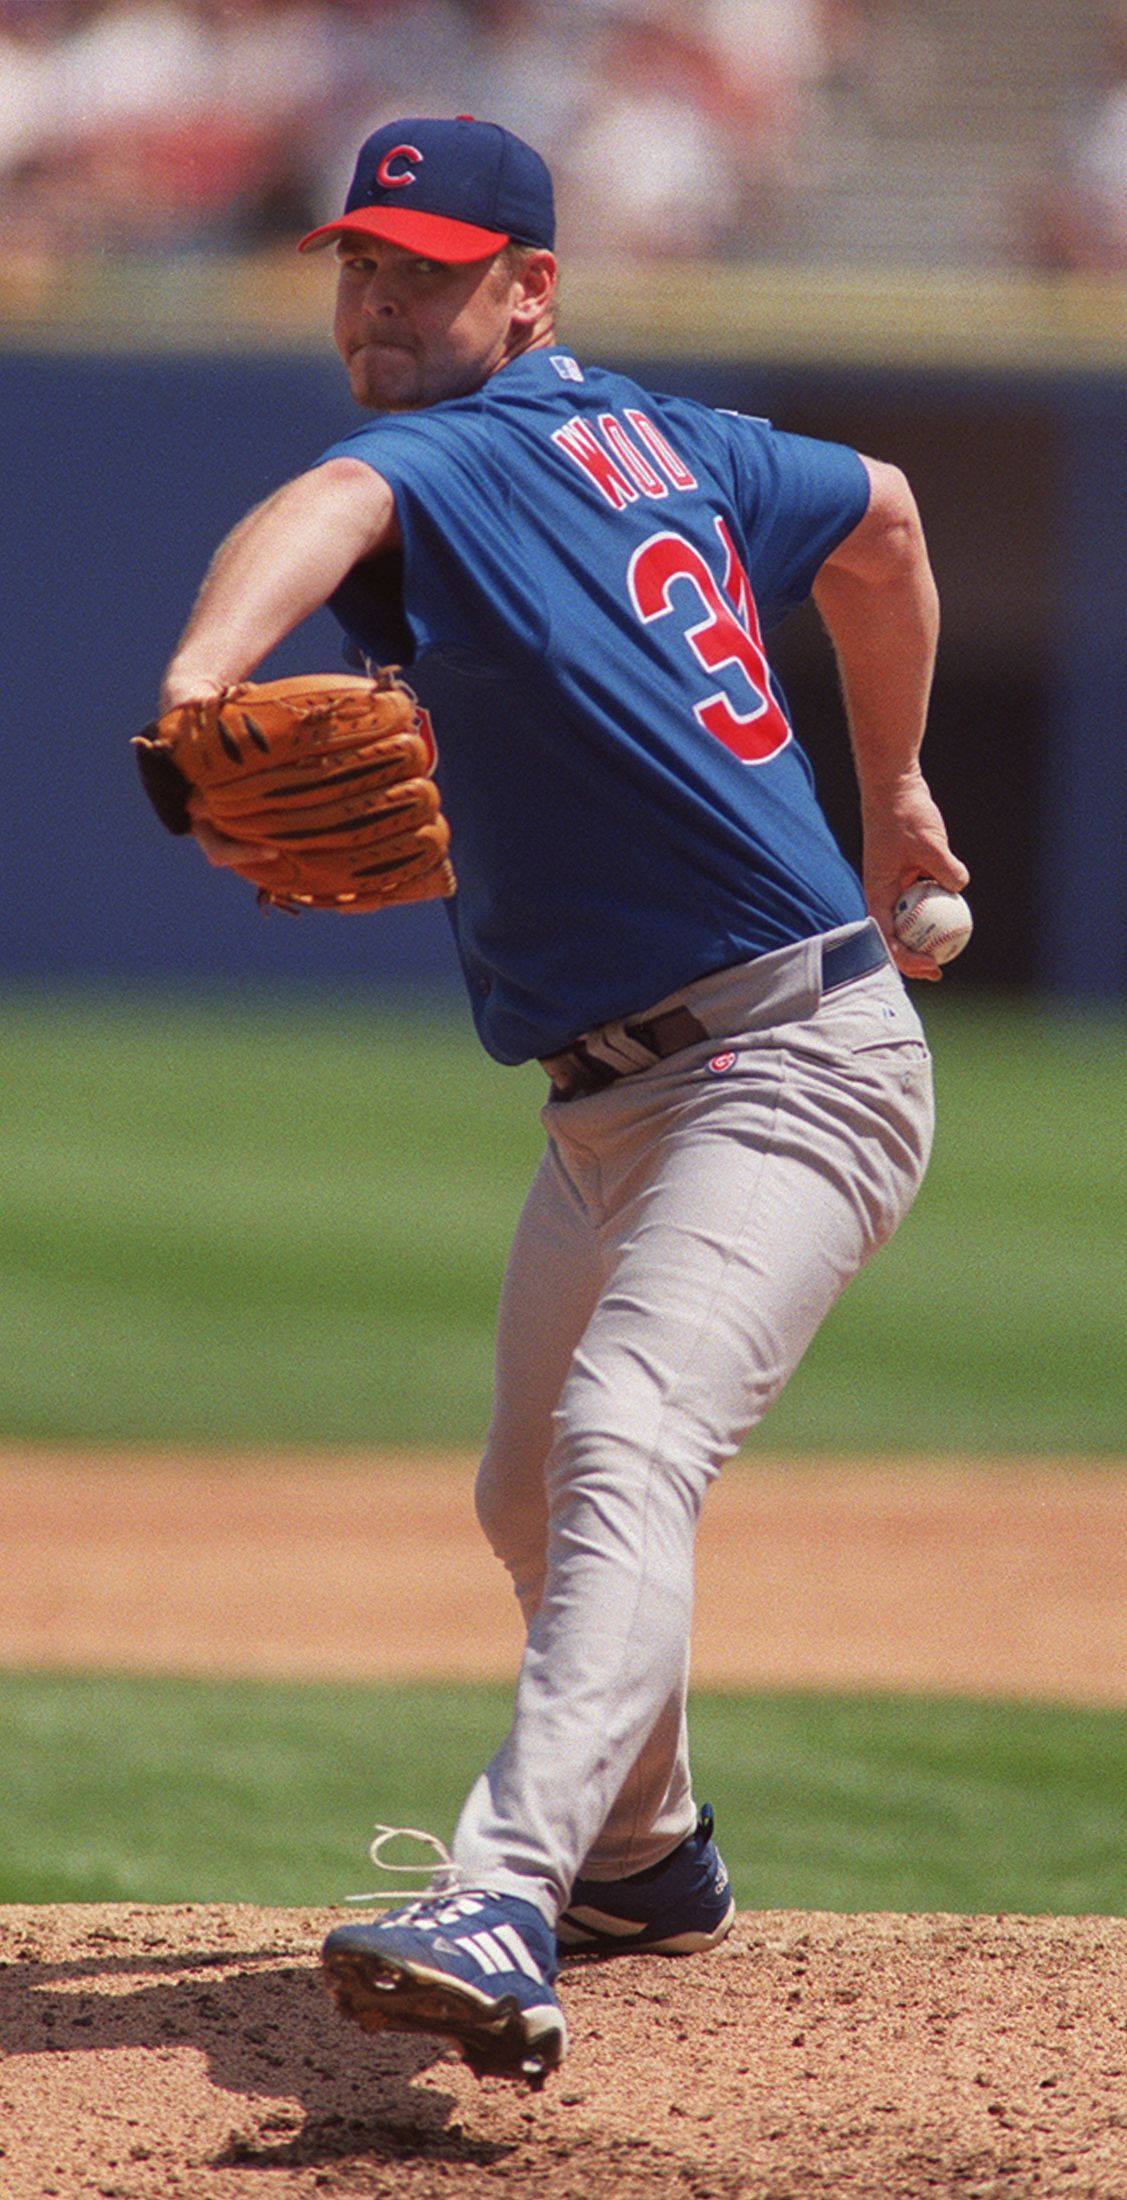 The Cubs' Kerry Wood delivers a pitch against the White Sox in 2003.